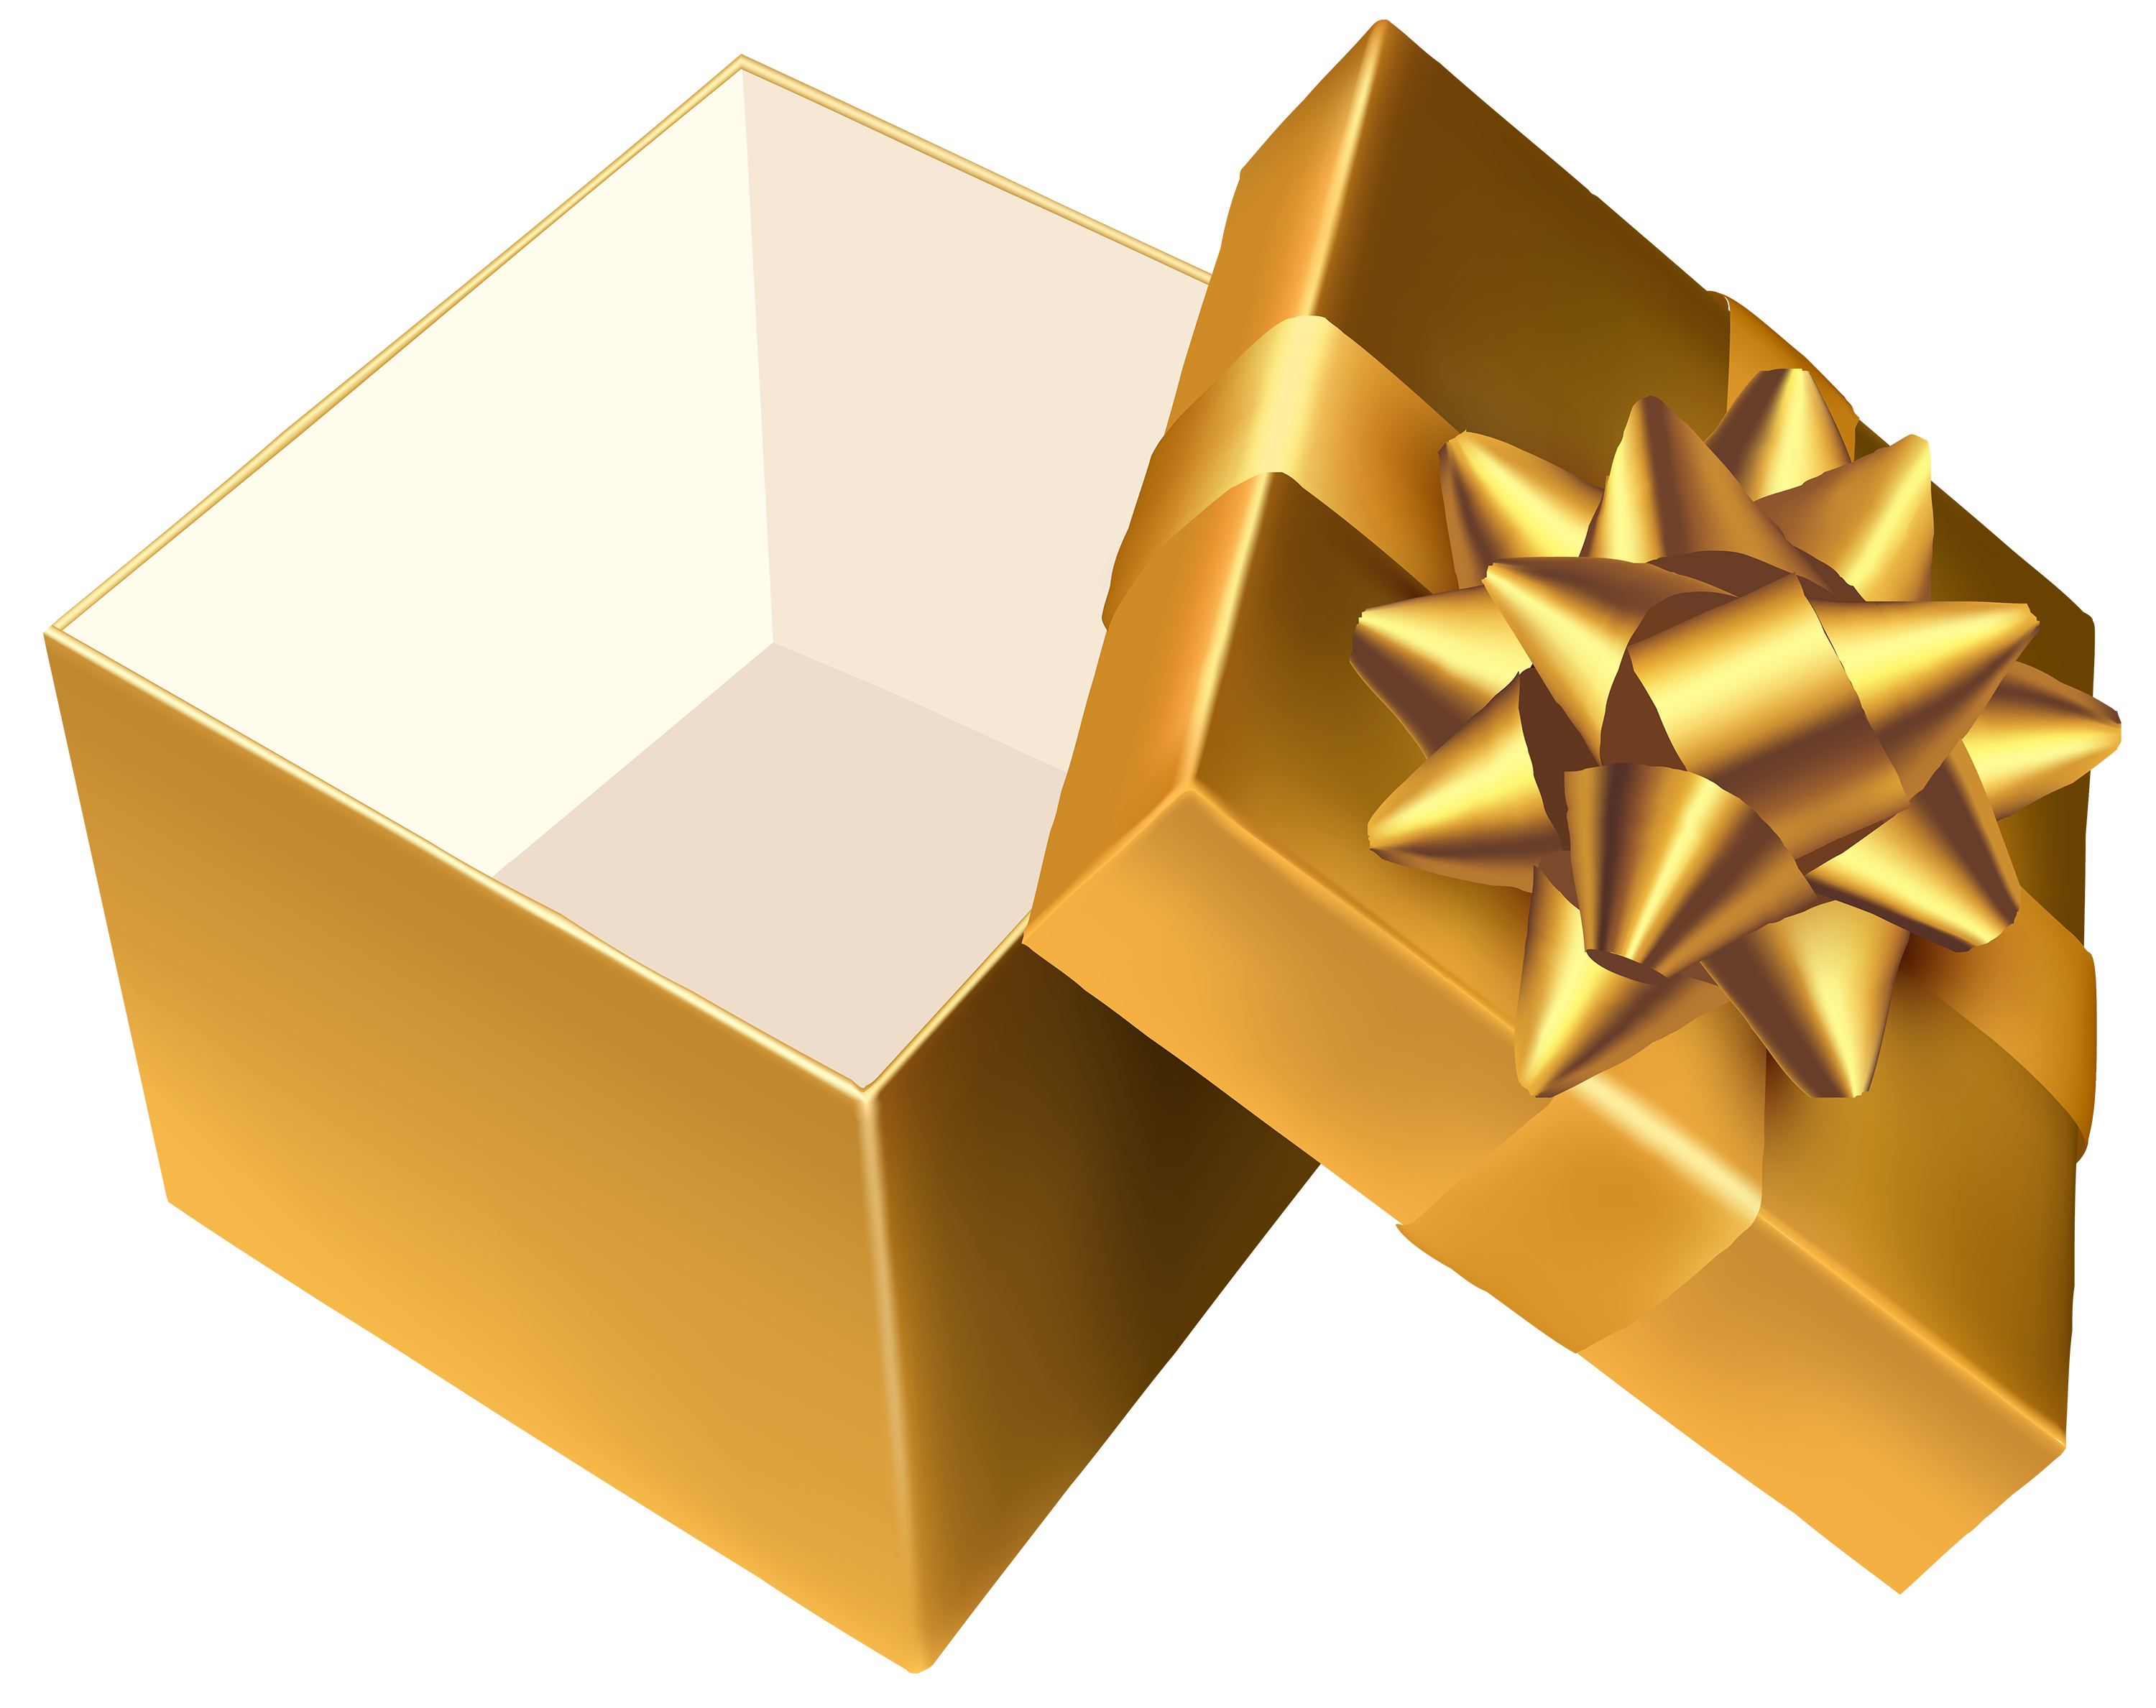 graphic free stock Open gift png best. Gifts clipart gold